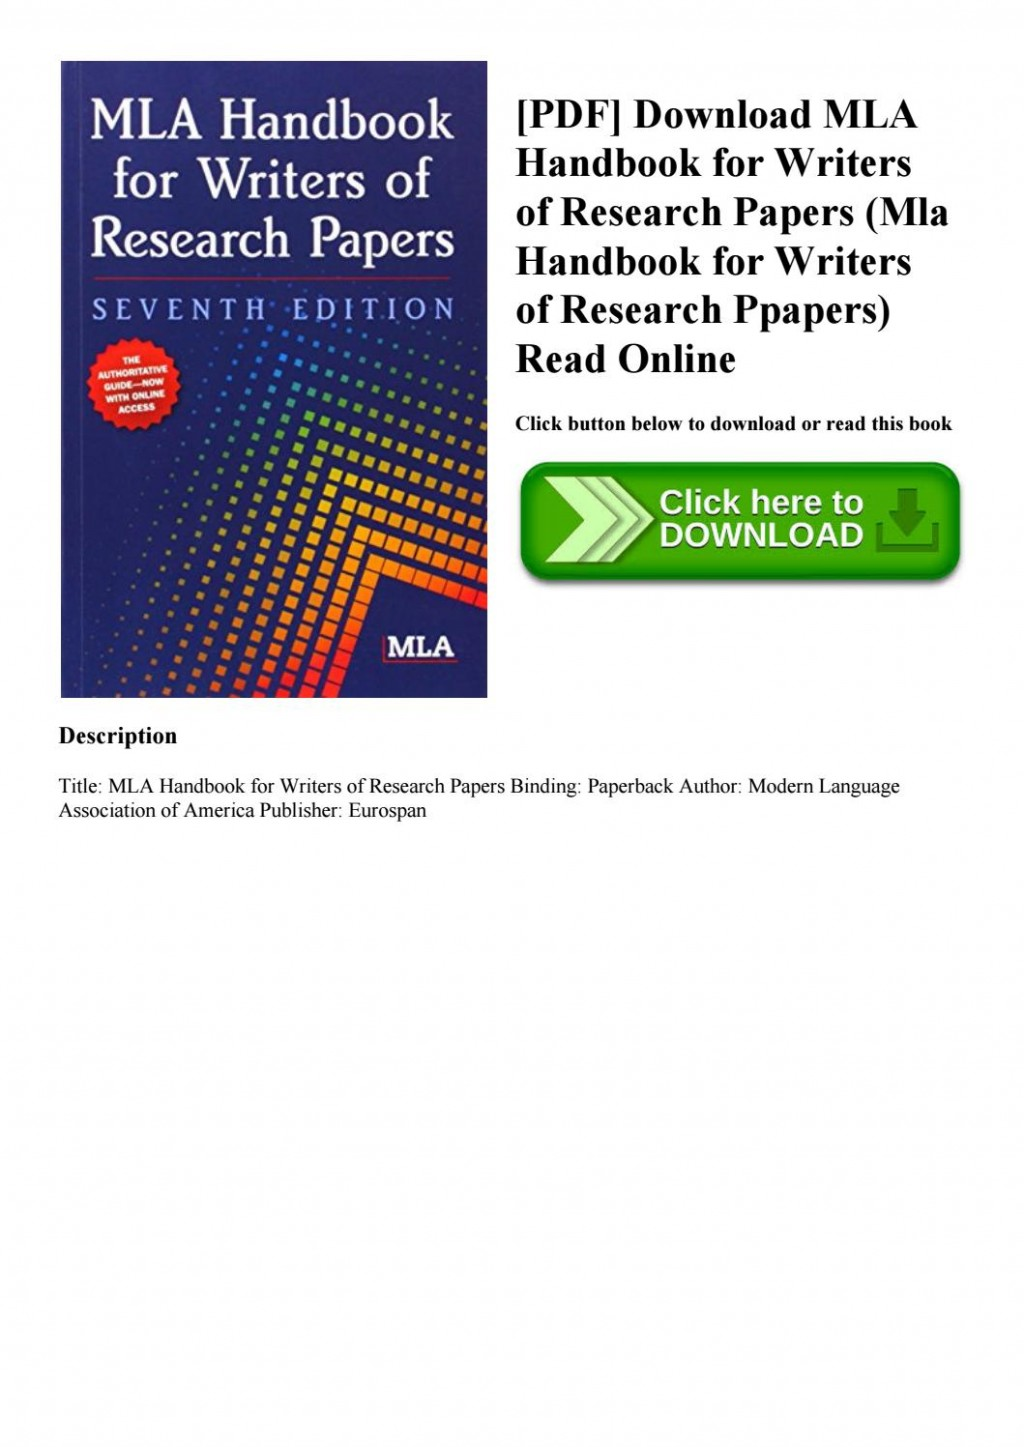 001 Mla Handbook For Writers Of Research Papers Pdf Download Paper Page 1 Top 8th Edition Free Large